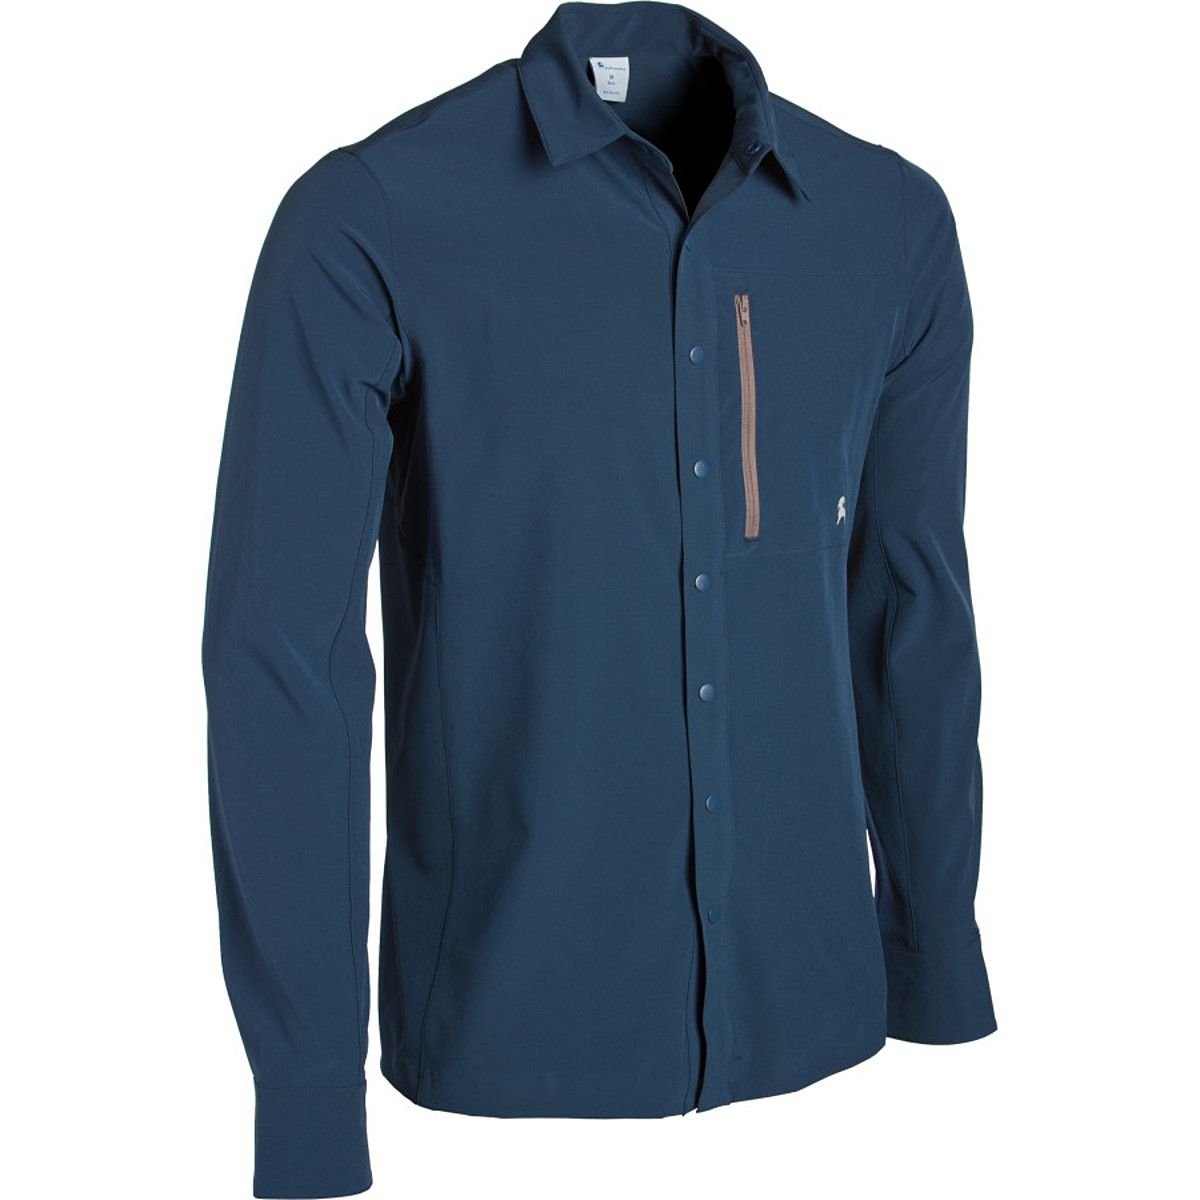 photo: Backcountry.com Provo Shirt - Long-Sleeve hiking shirt